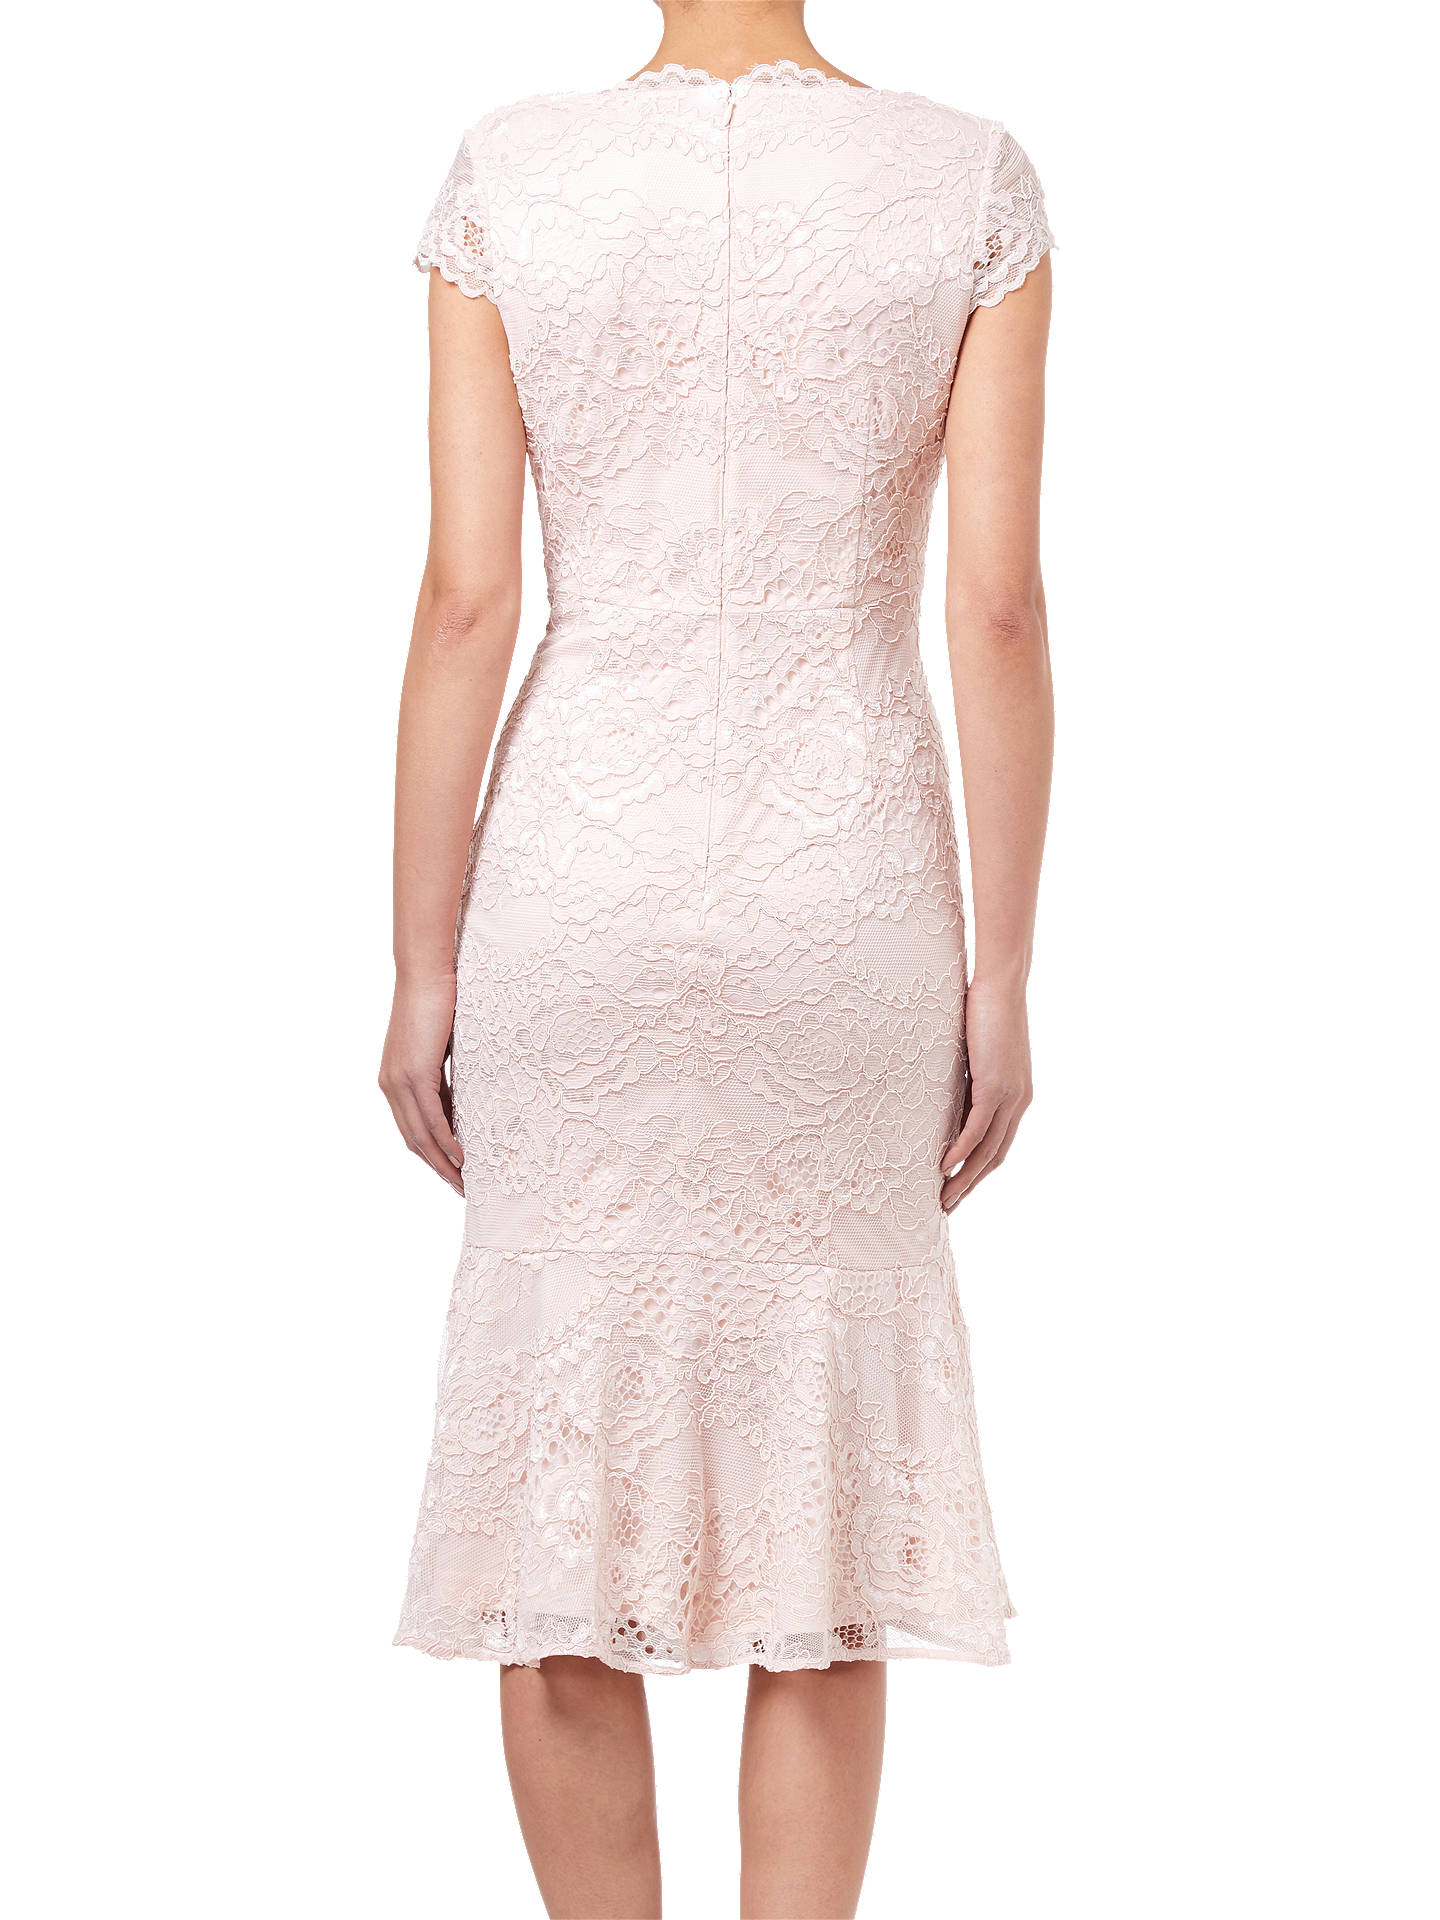 BuyAdrianna Papell Short Lace Dress, Blush, 10 Online at johnlewis.com